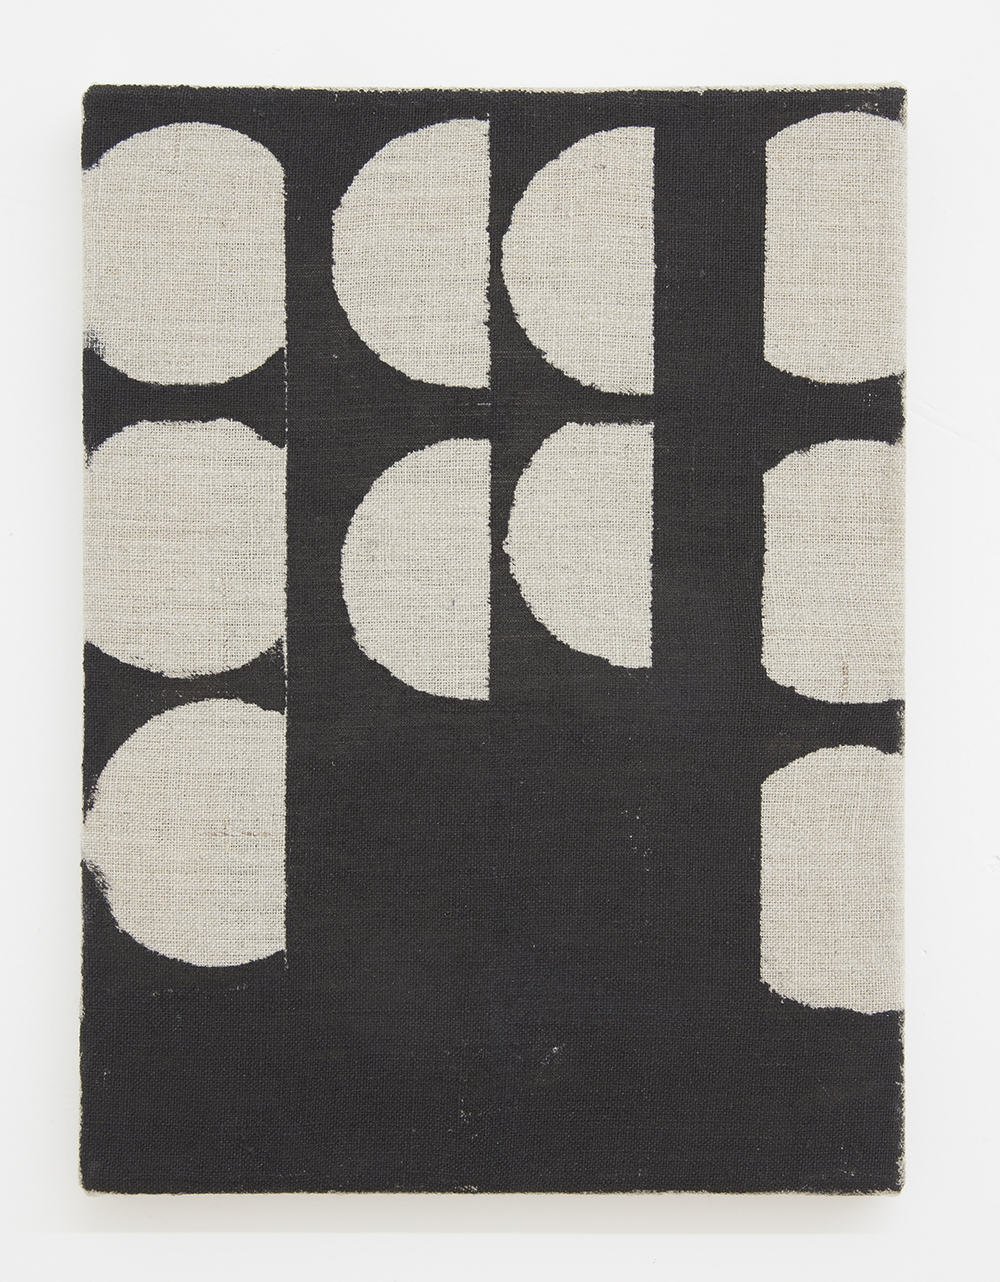 AUGUSTUS THOMPSON Untitled (Bean Can 3), 2013 Ink on linen 12 x 8 inches